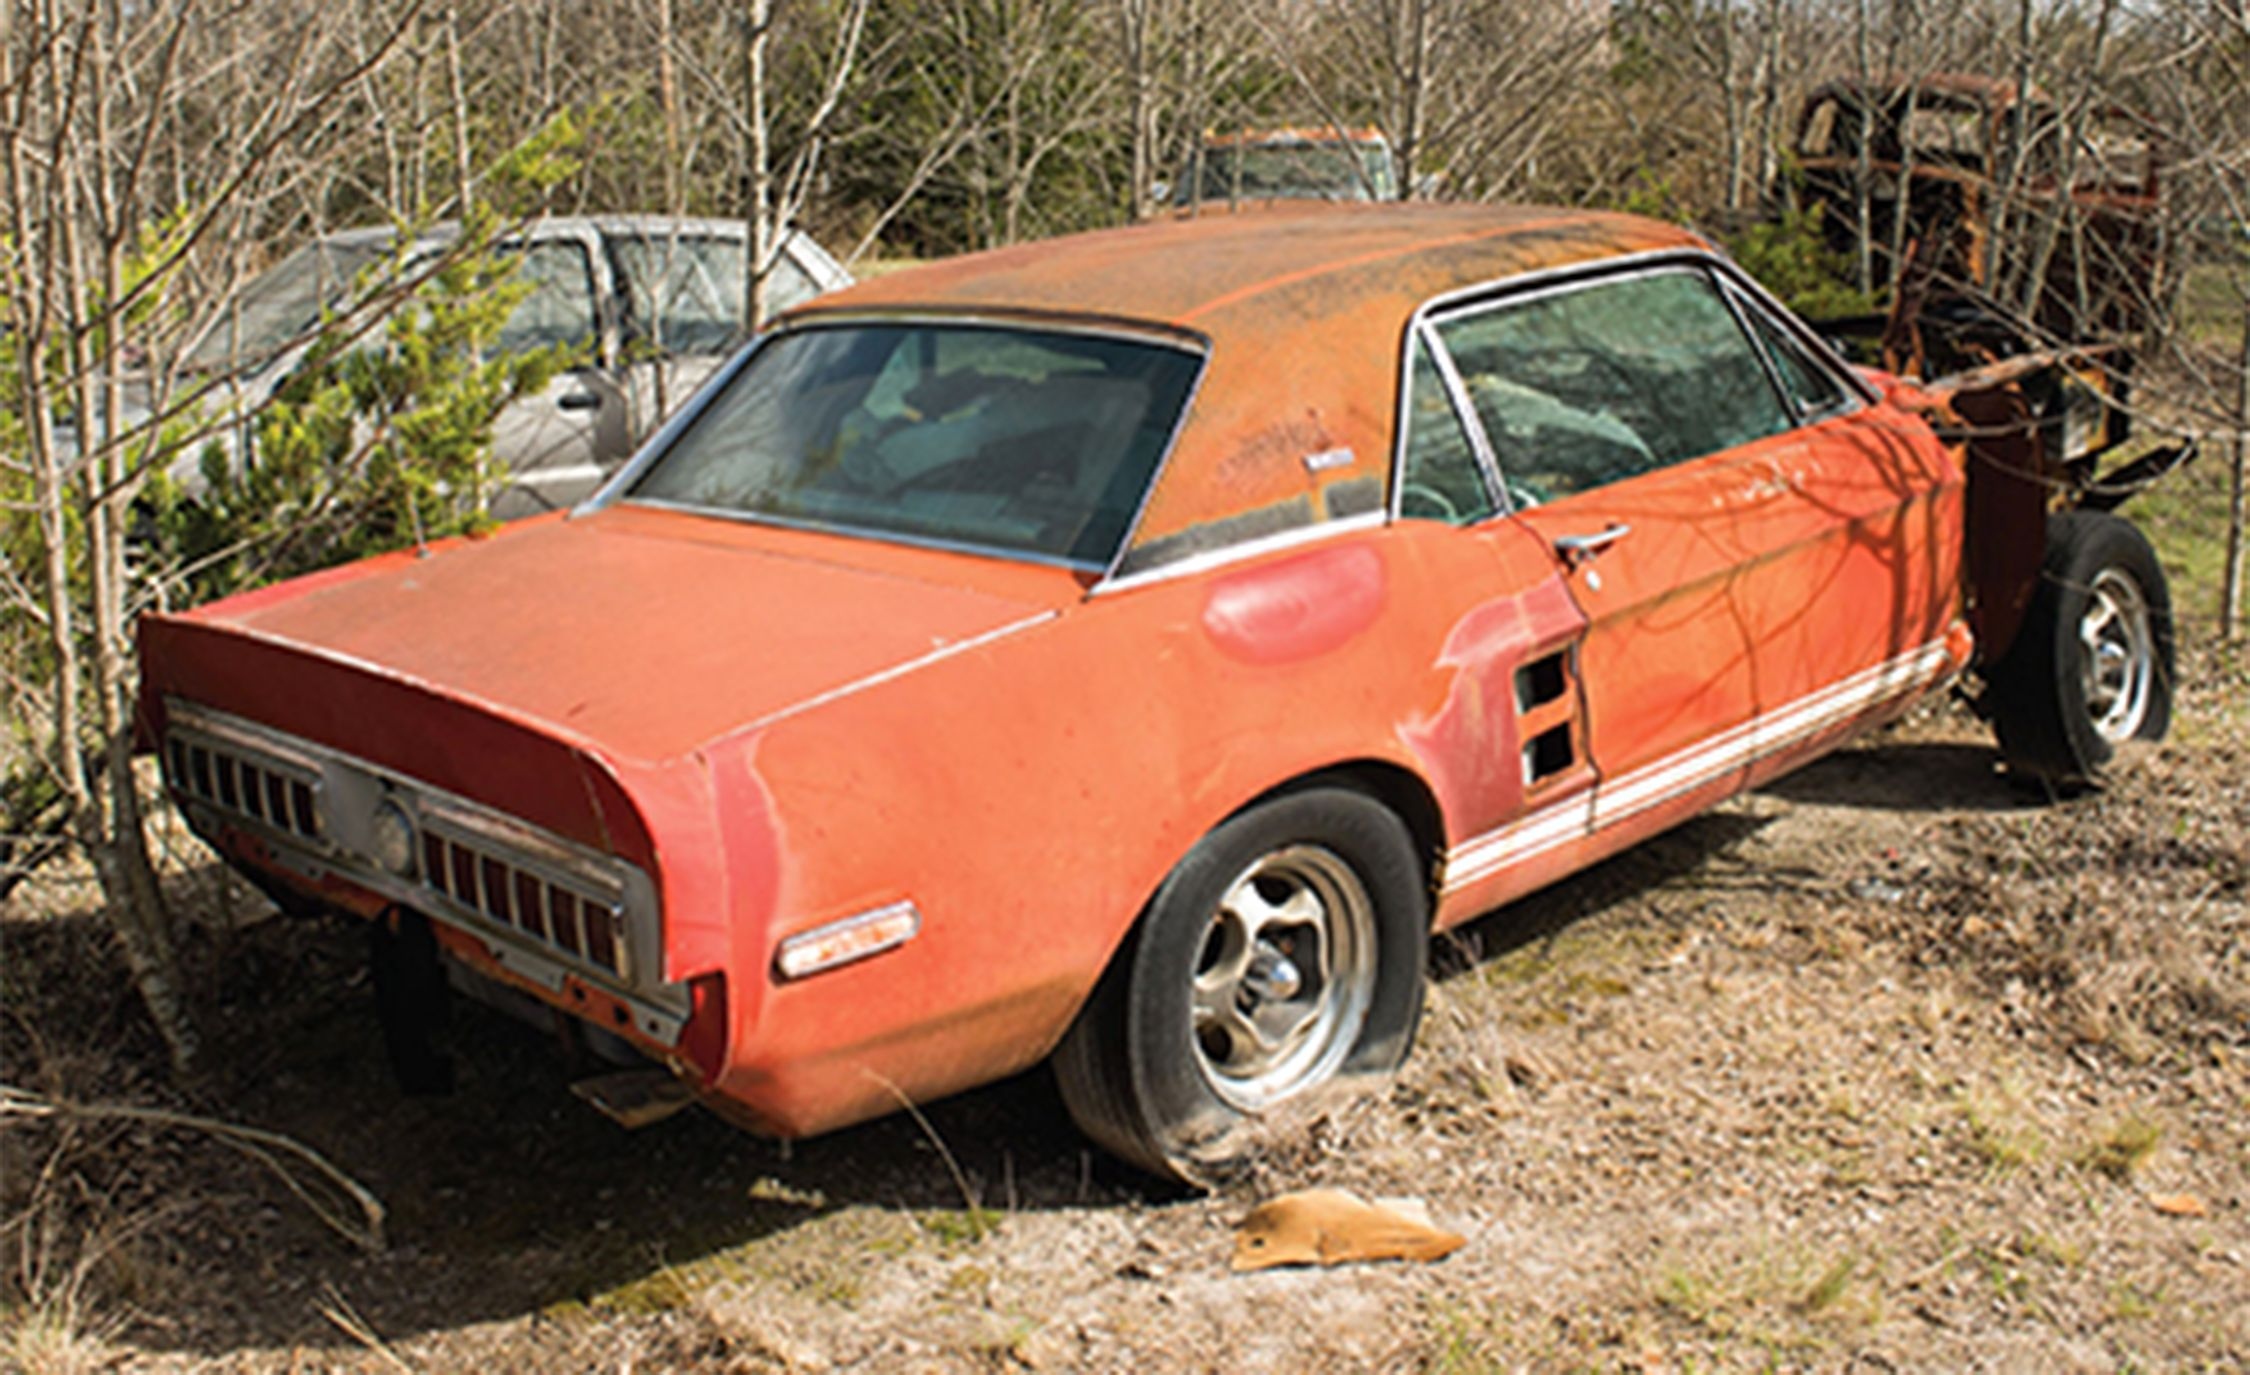 1967 mustang shelby gt500 prototype found lost little red shelby discovered in texas